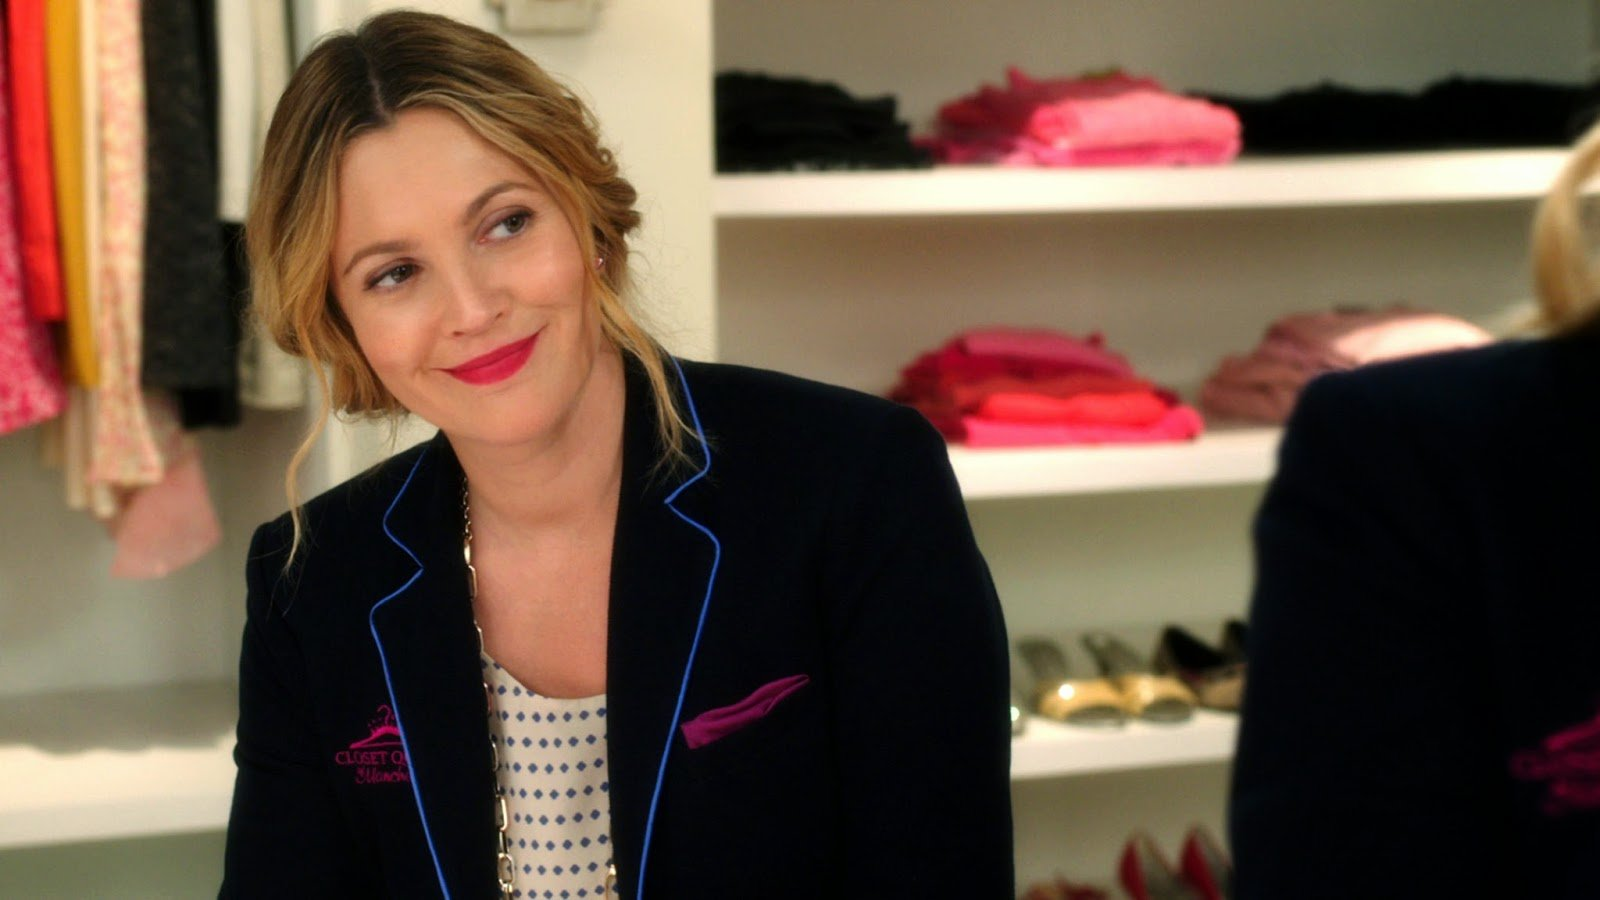 g11 30 Things You Might Not Have Realised About Drew Barrymore